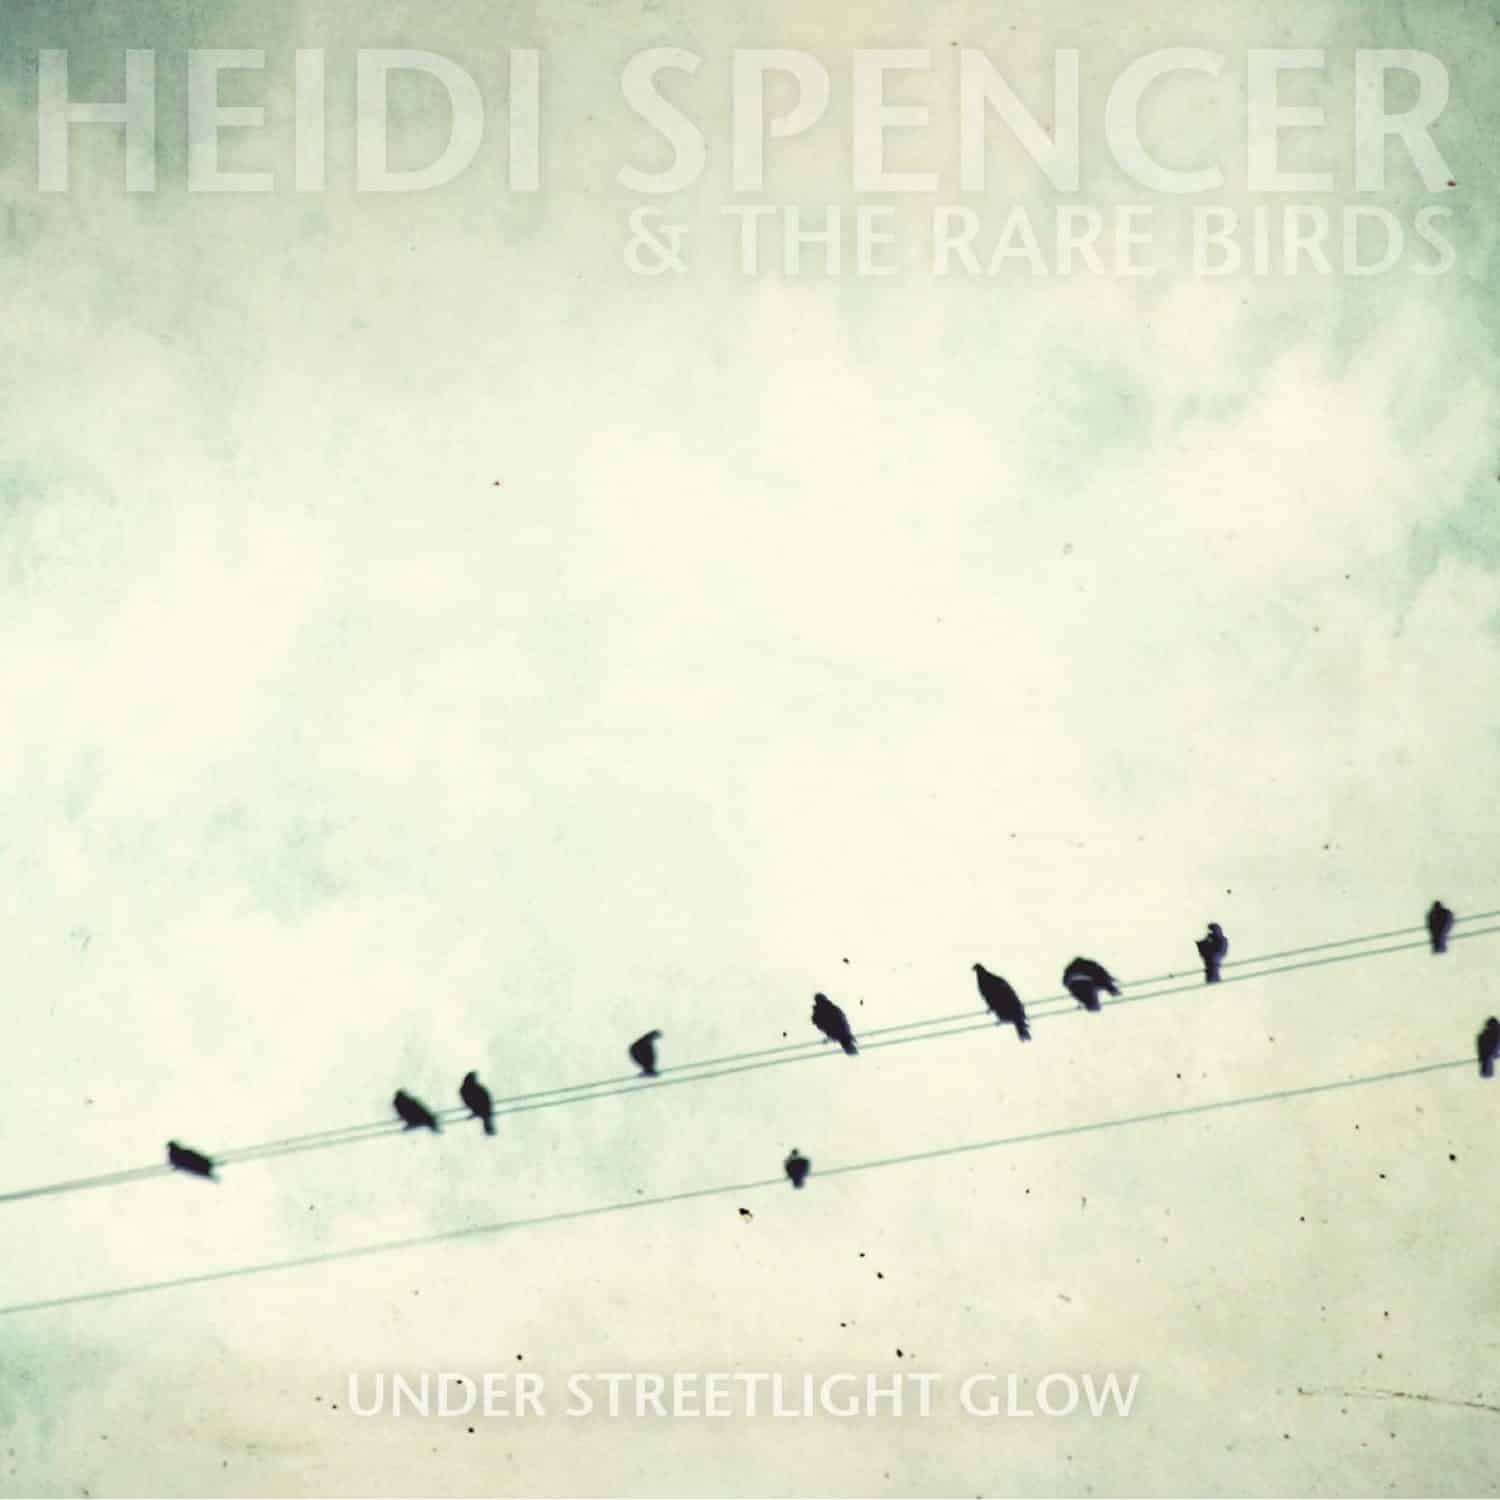 heidi spencer and the rare birds under streetlight glow artwork